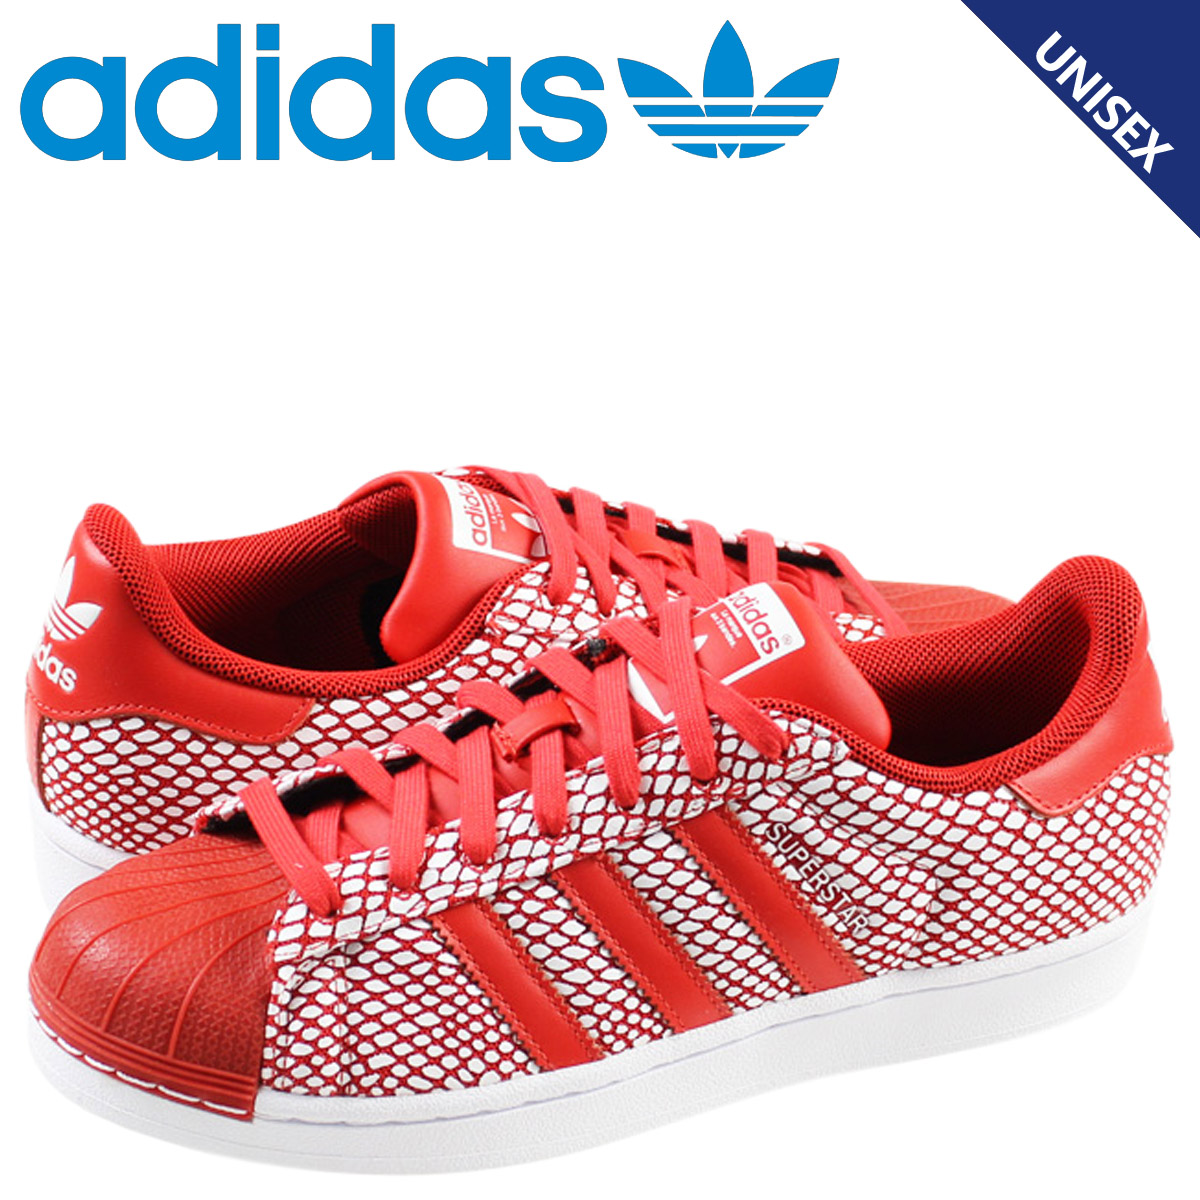 afc6d0a9b39b Adidas originals adidas Originals SUPERSTAR SNAKE PACK sneakers Super Star  snake Pack leather men s women s S82730 red unisex  7   4 new in stock